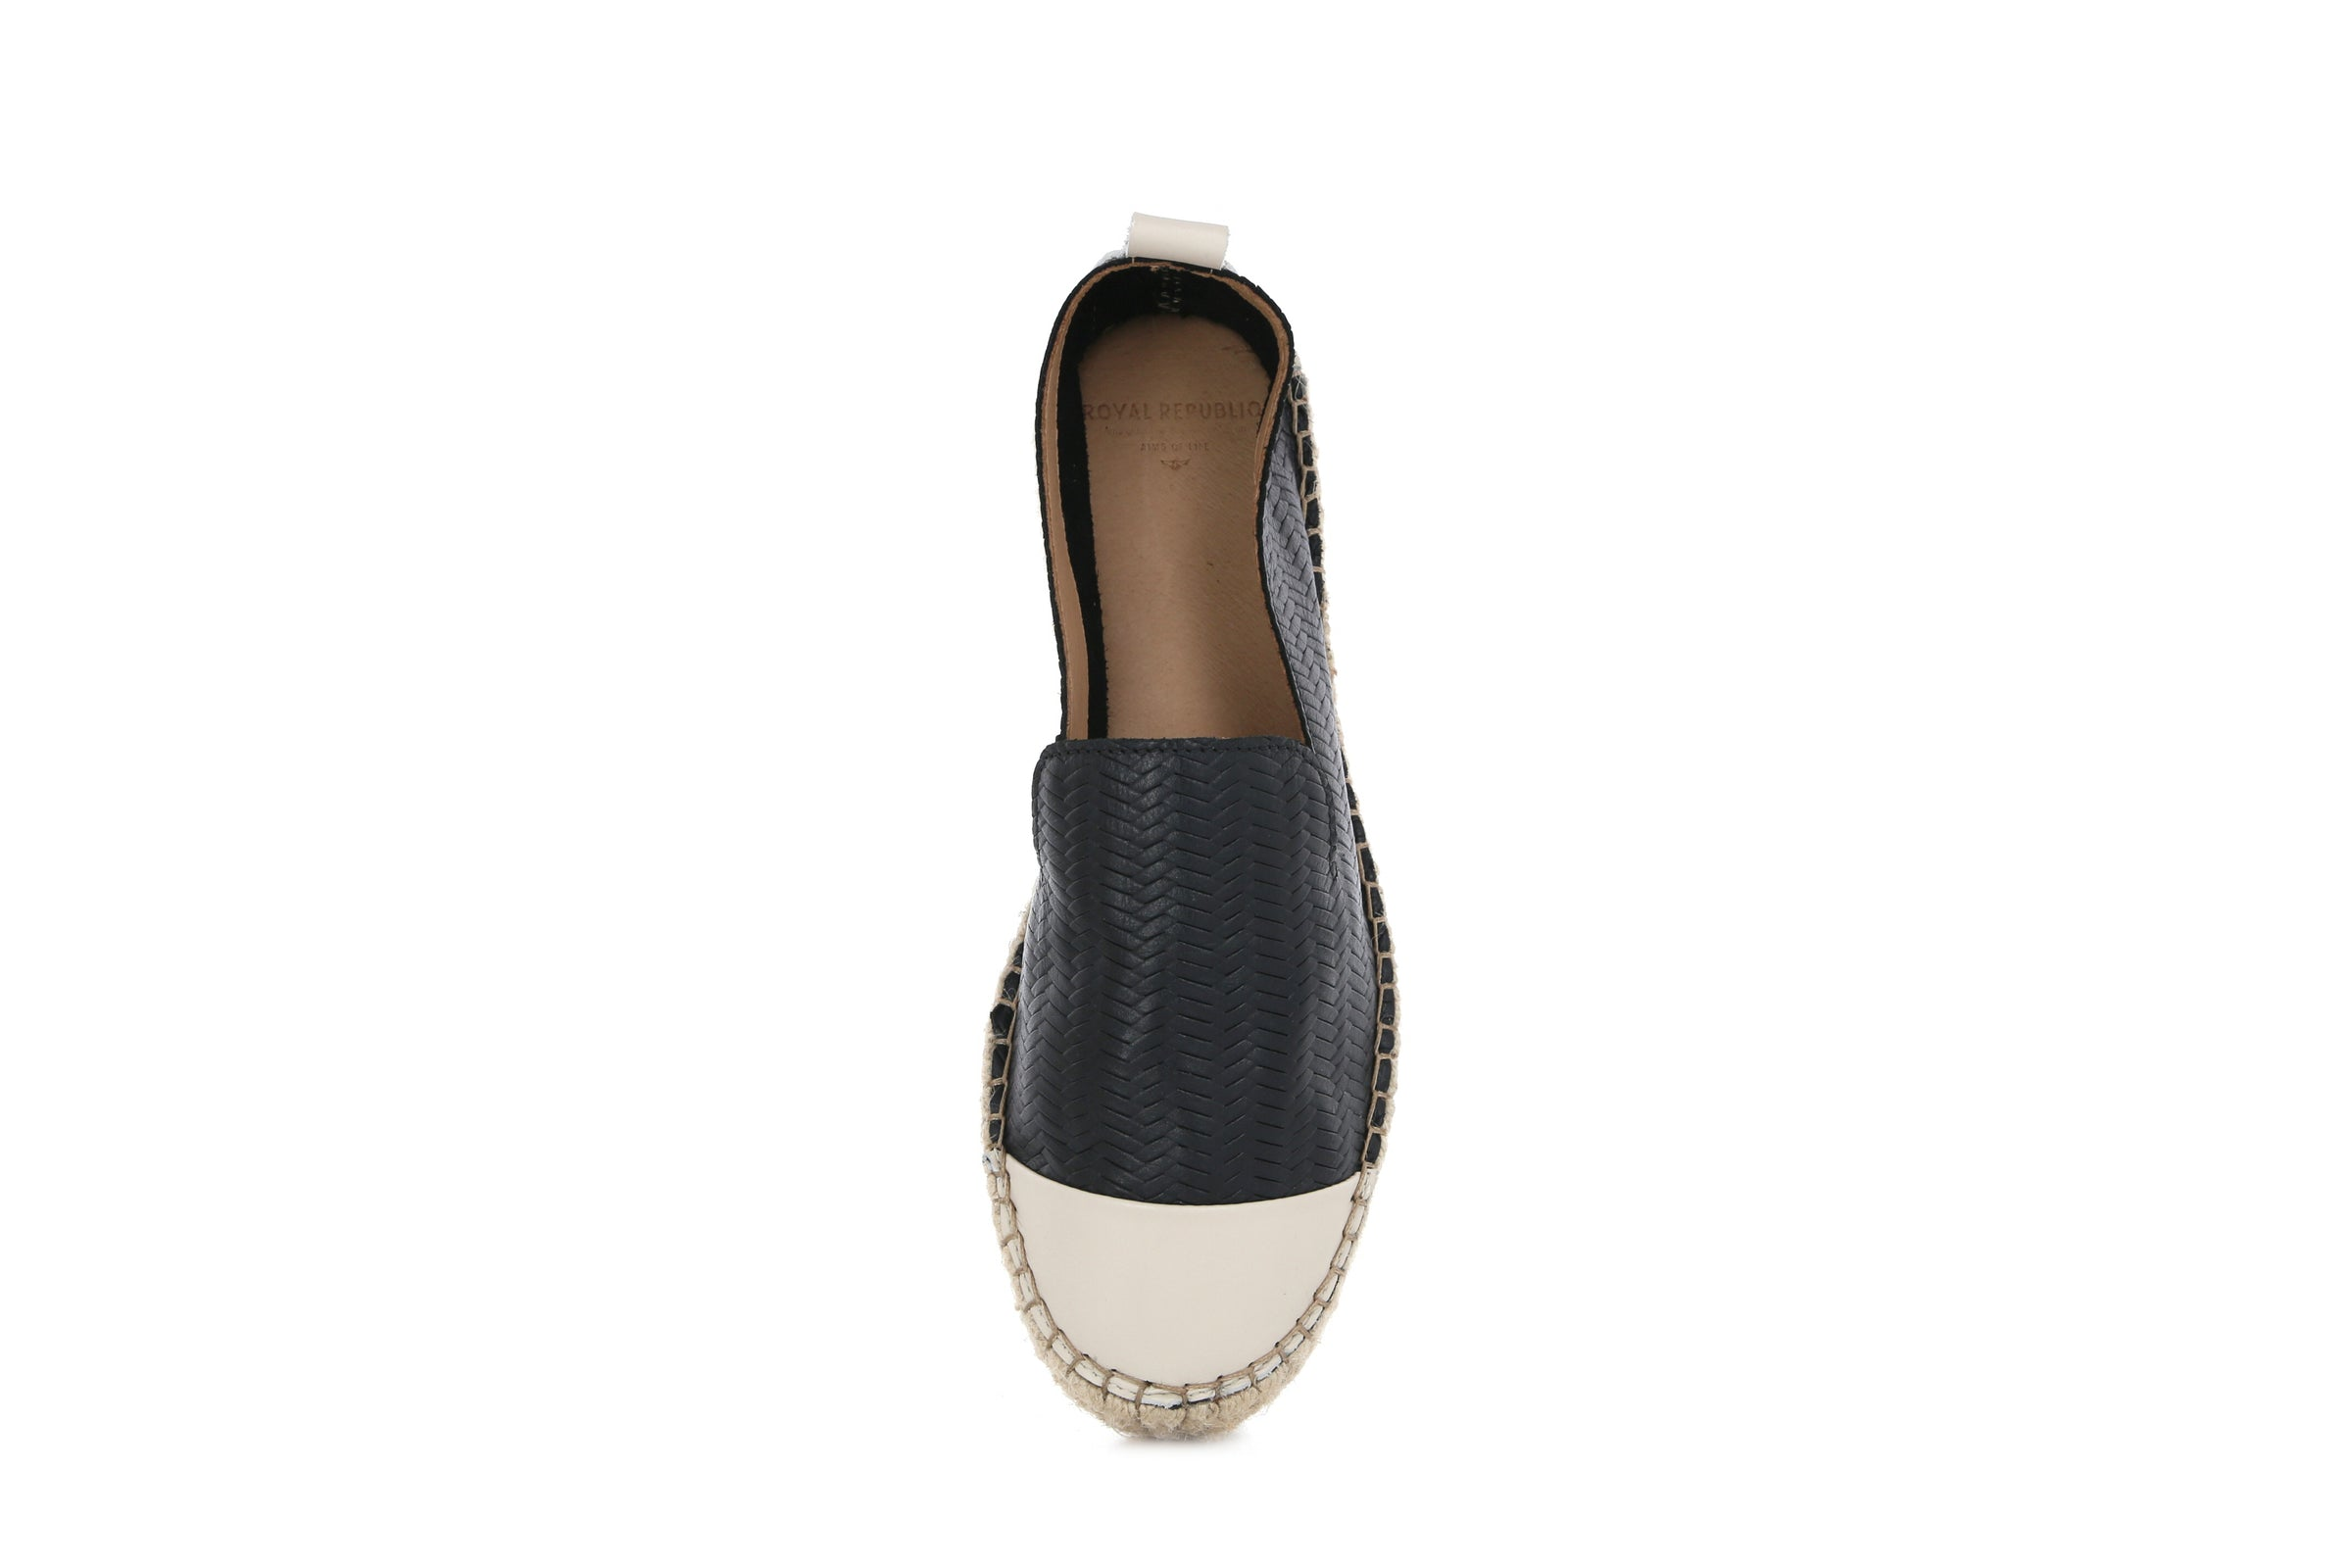 Wayfarer Braided Loafer